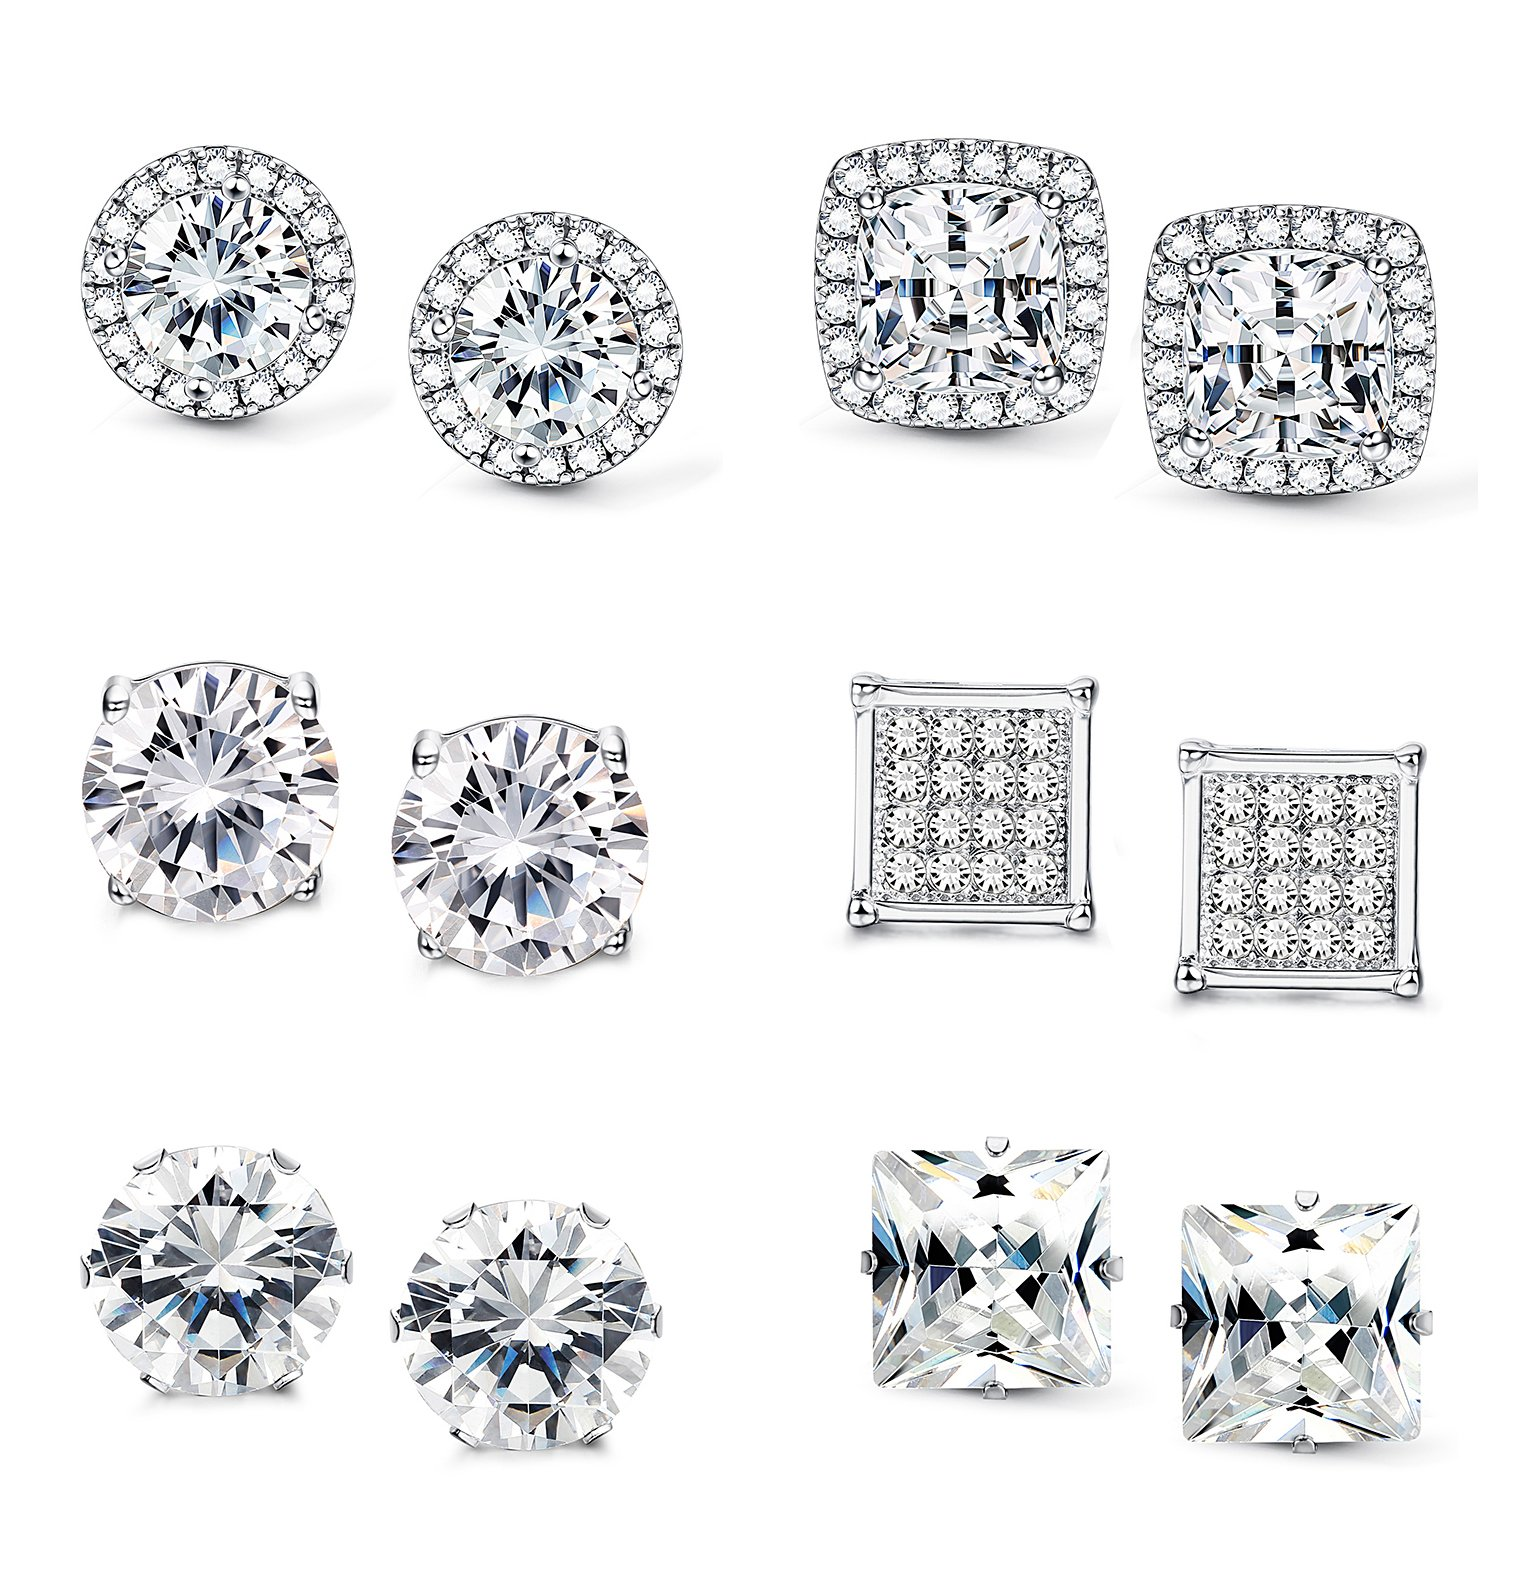 Jstyle Halo Cubic Zirconia Stud Earrings for Women Girls Clear CZ Round Square Stud Earrings Set Ear Jewelry by Jstyle